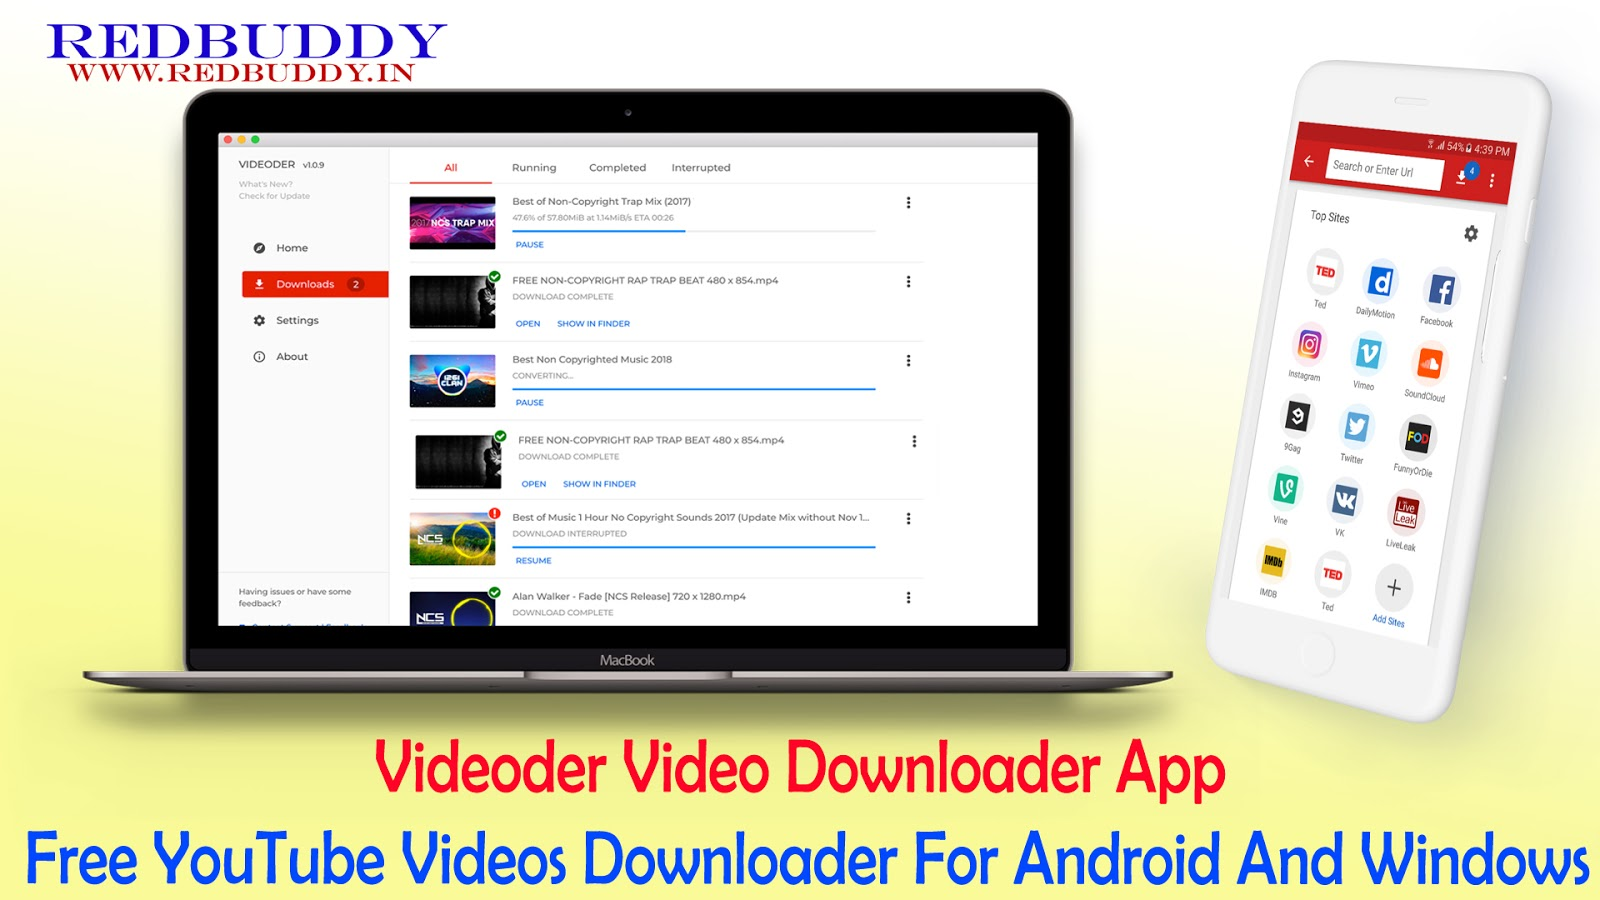 Videoder Video Downloader App - Free YouTube Videos